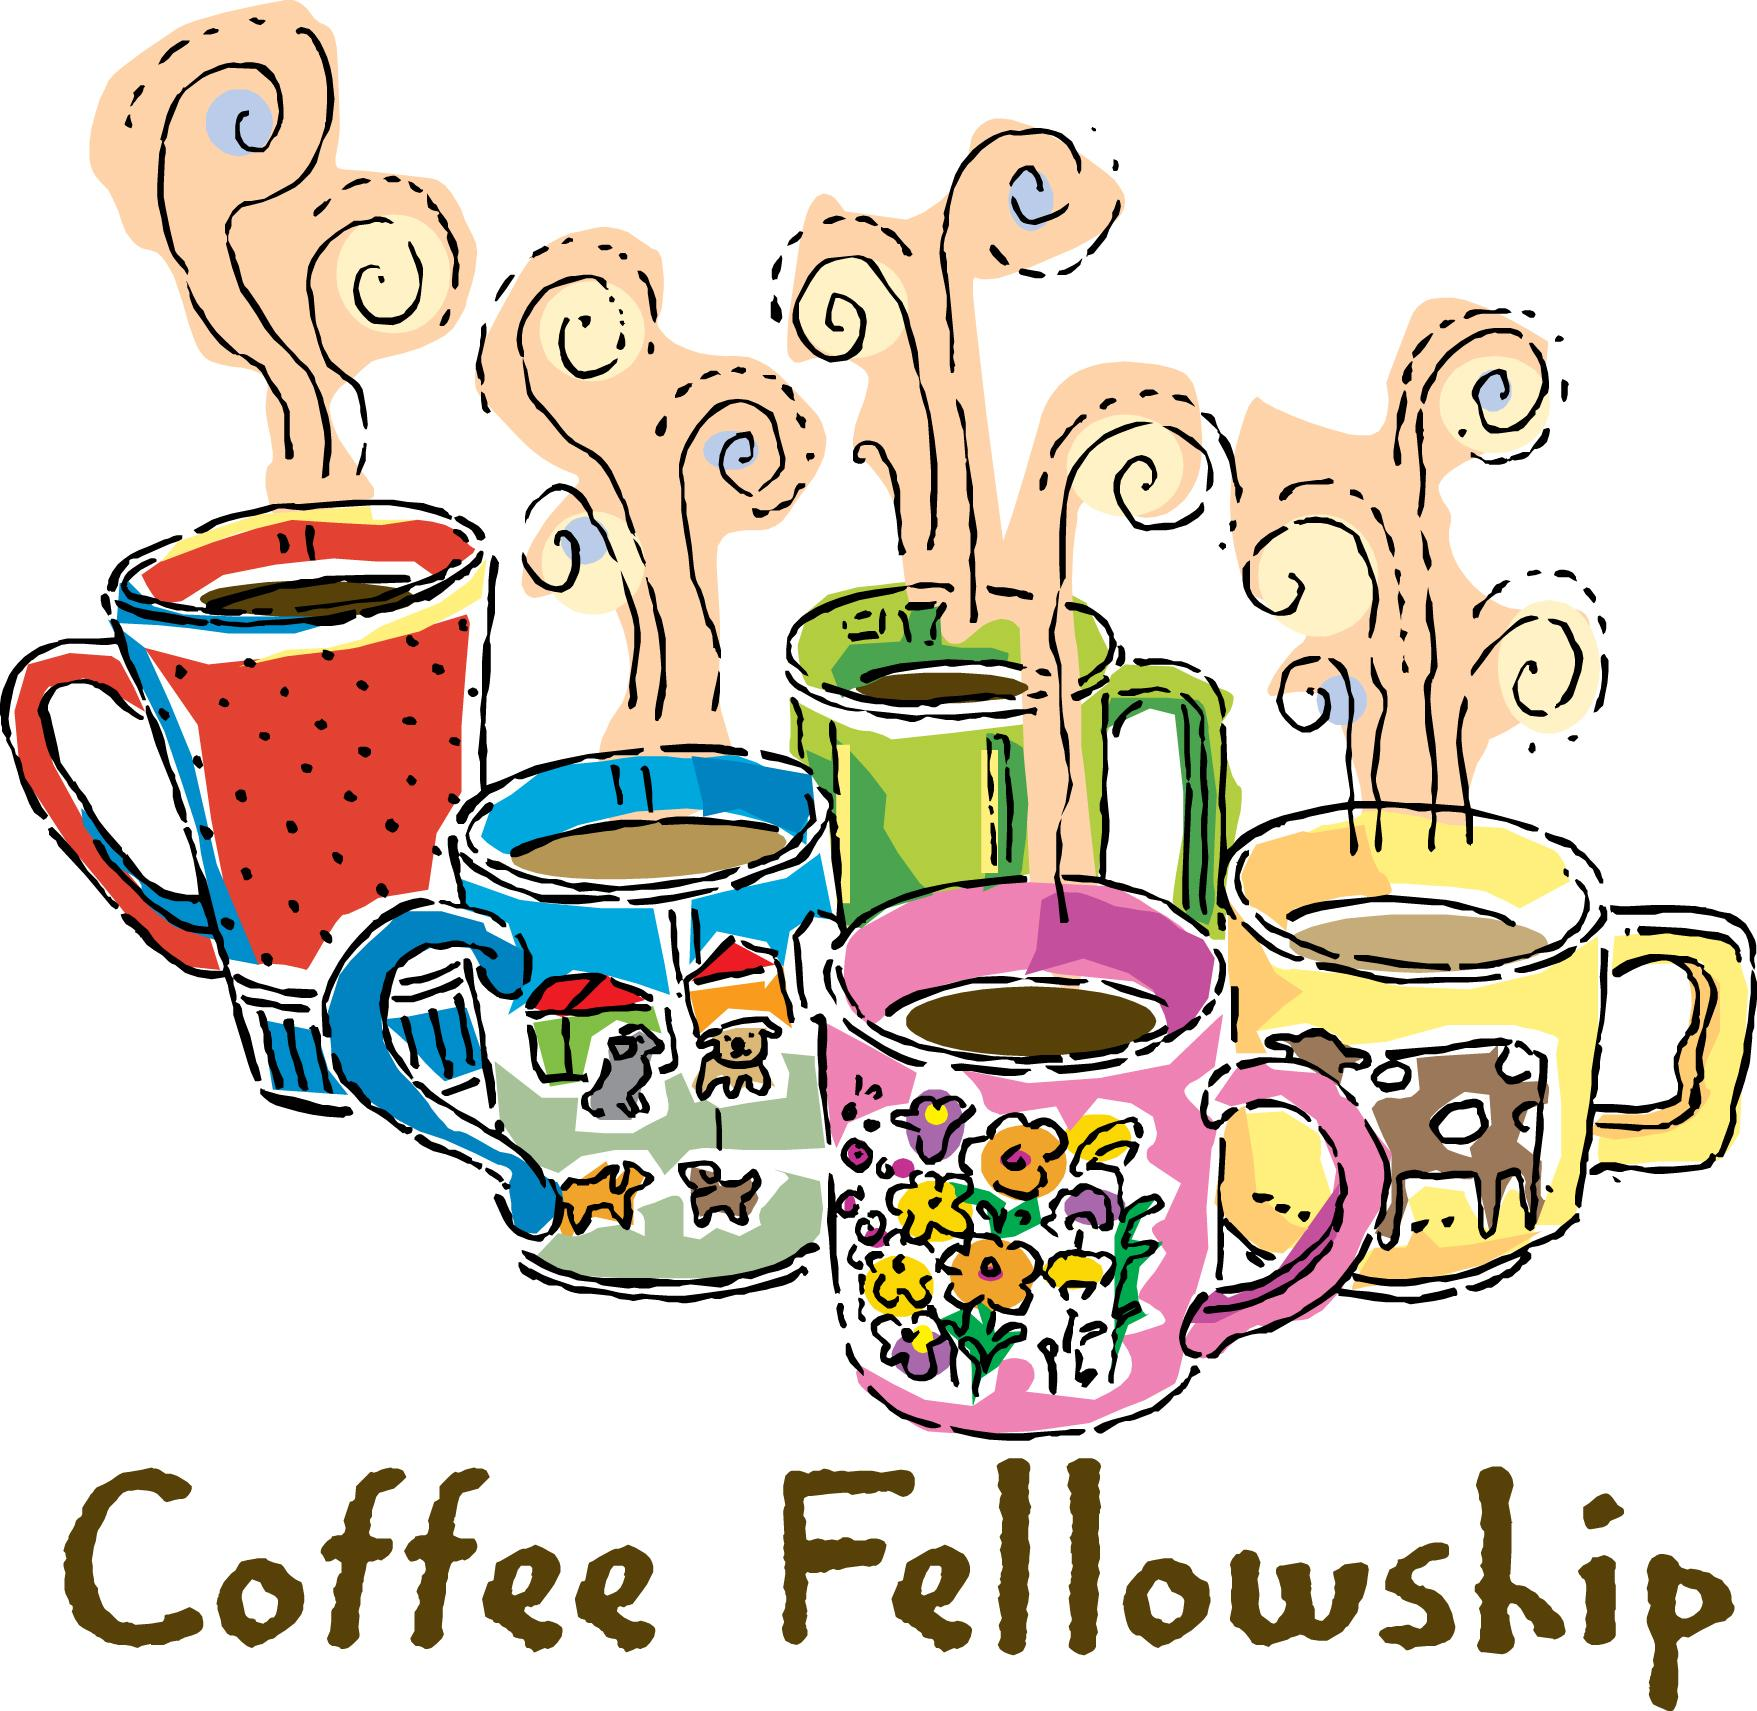 Church Coffee Fellowship Clip Art free image.